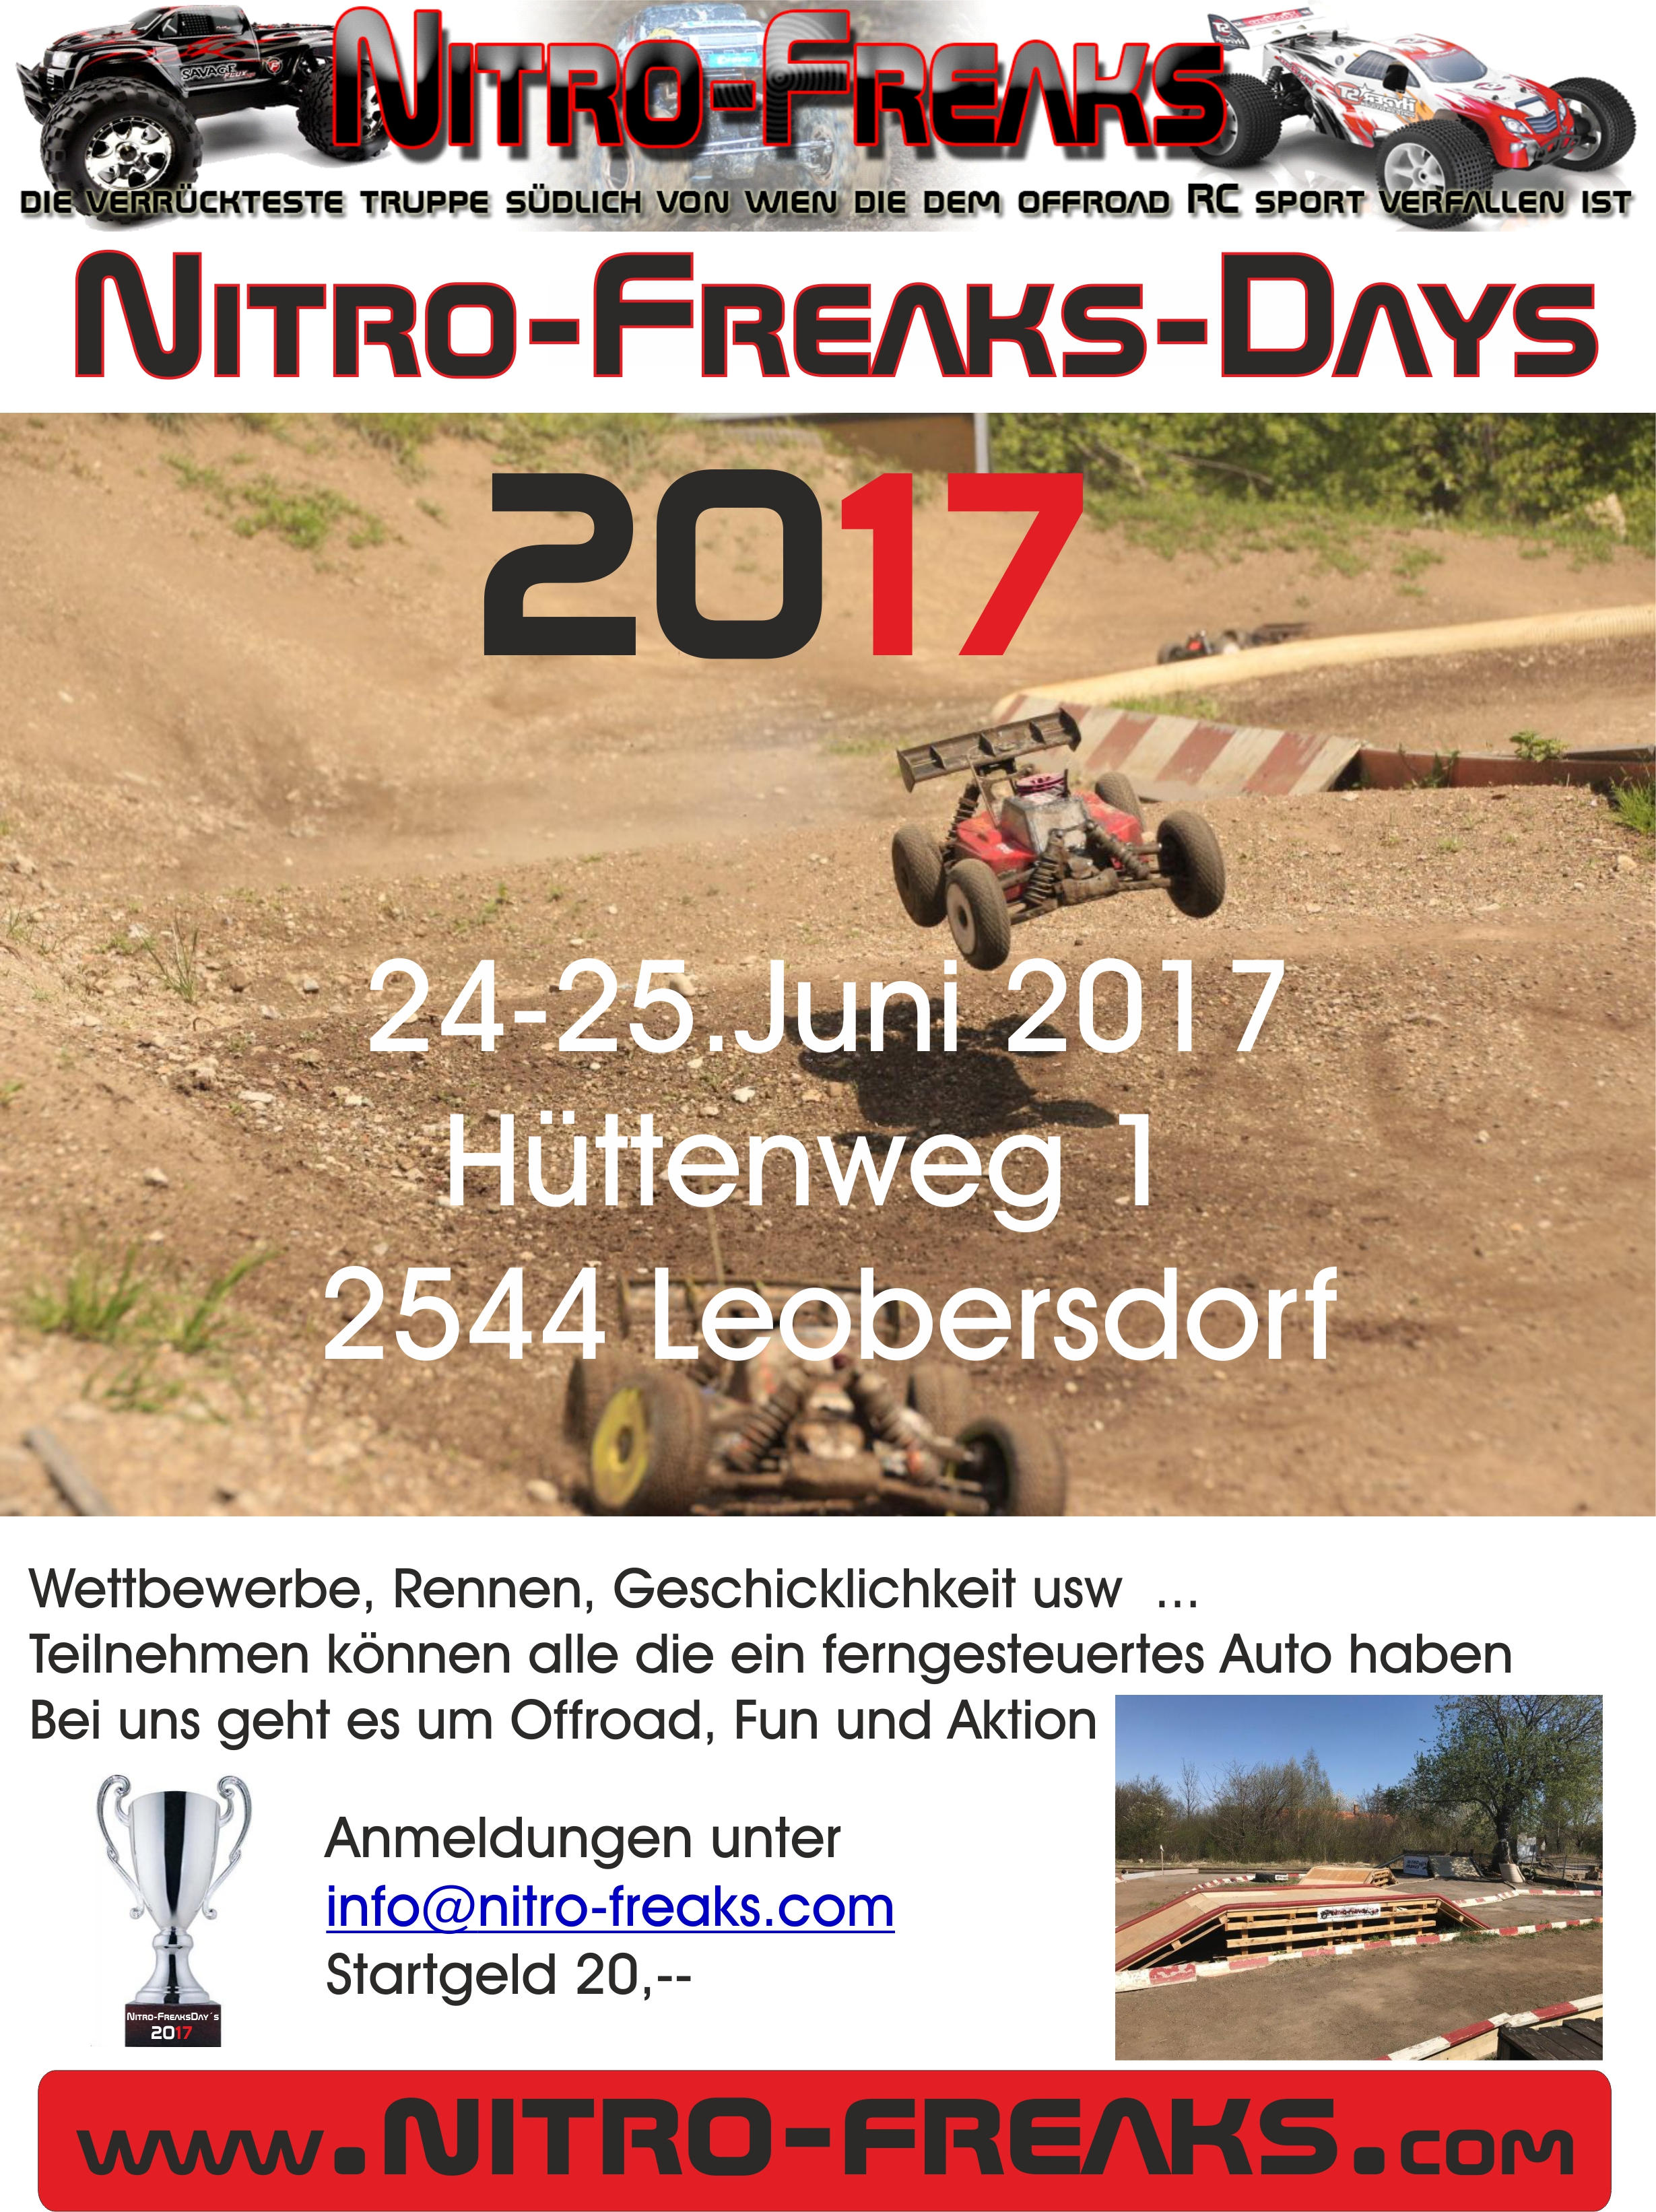 Nitro Freak days 2017